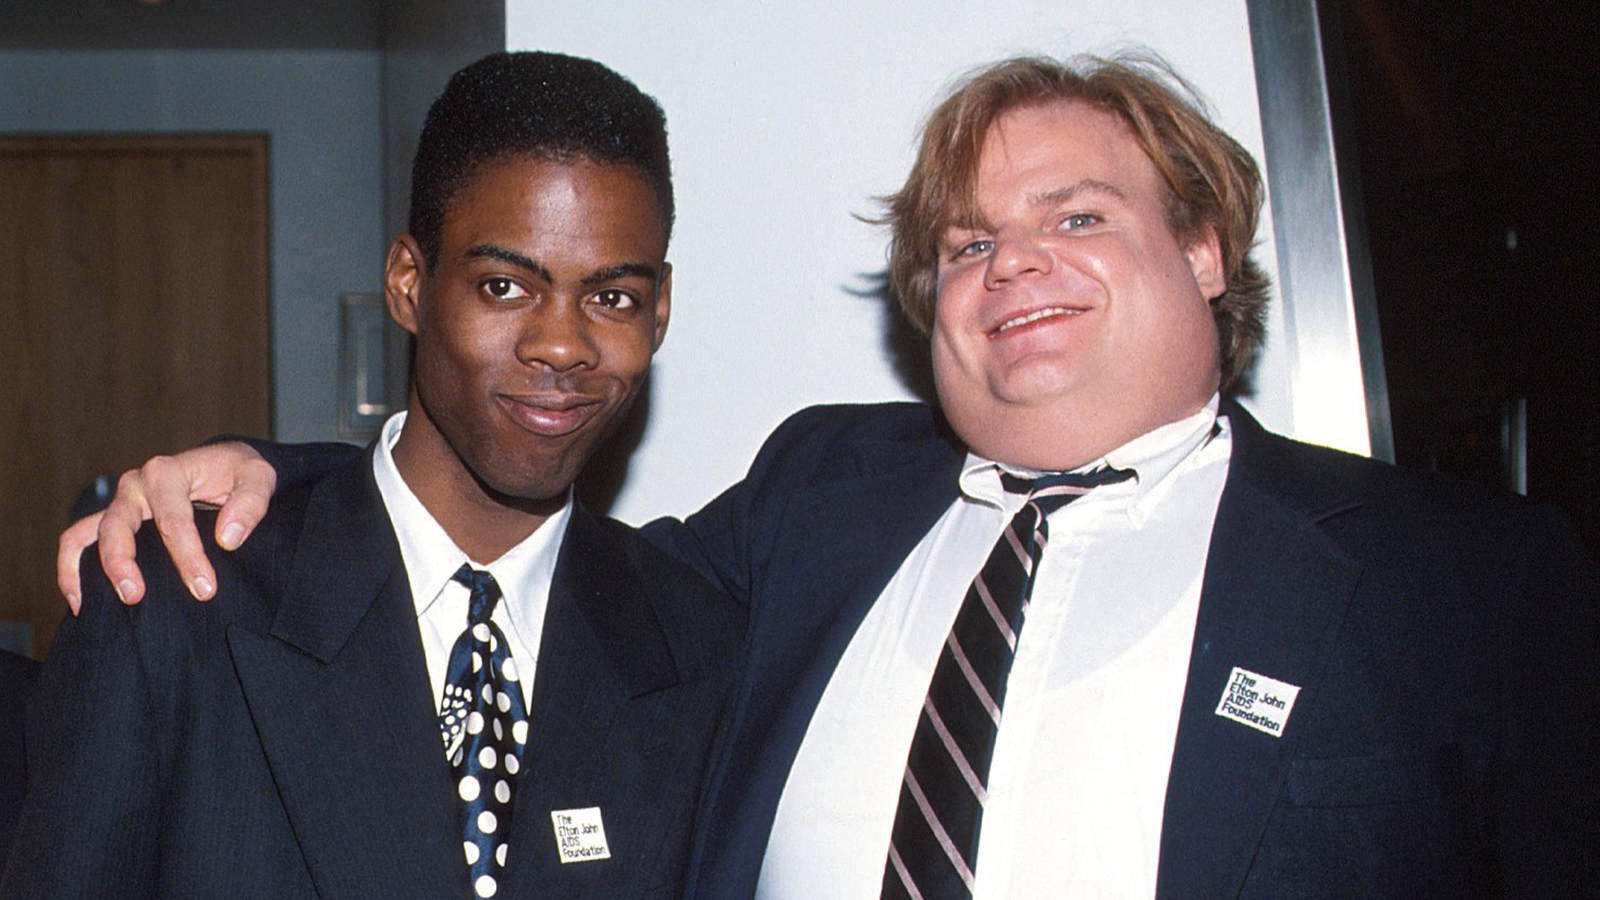 Chris Rock recalls the final time he saw Chris Farley